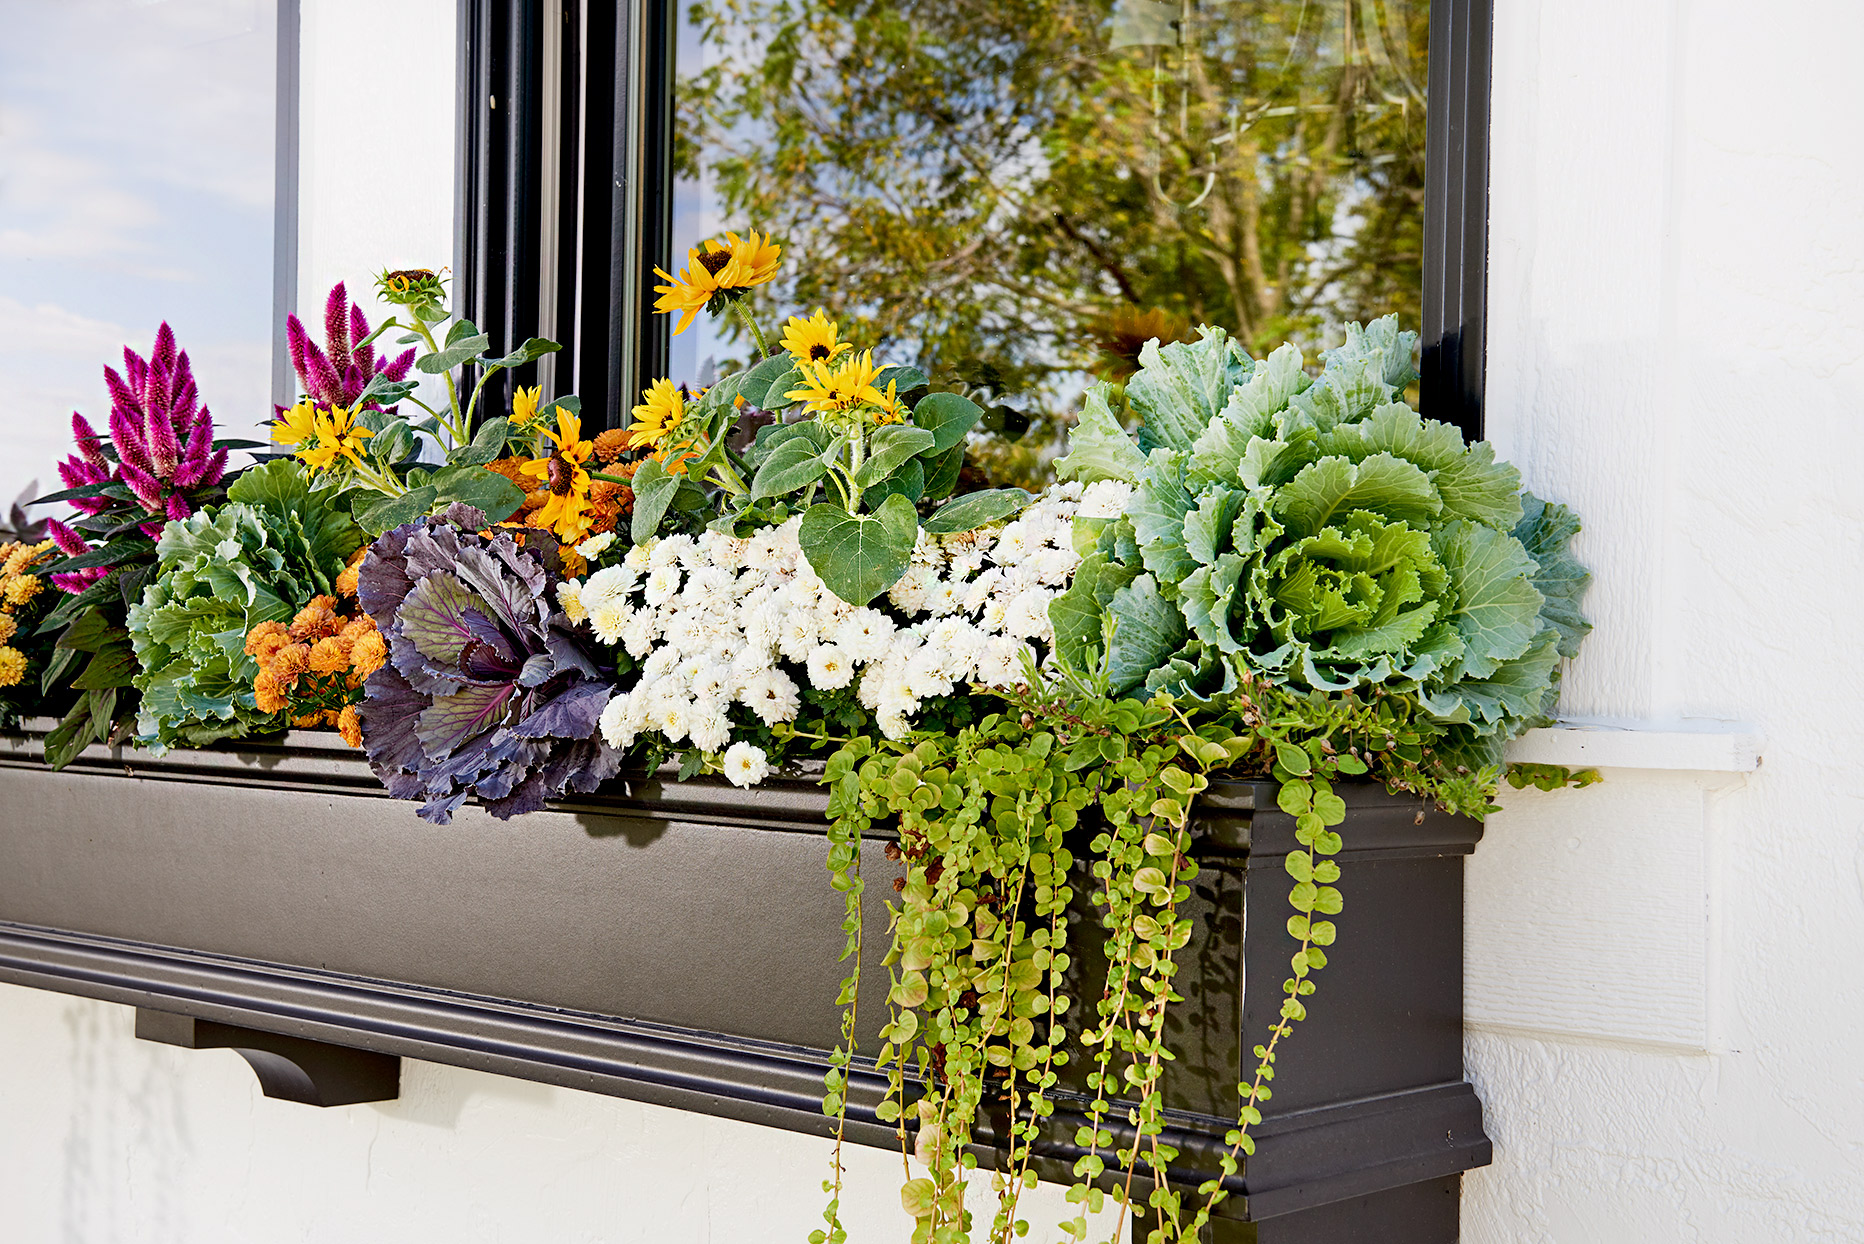 Window planter with variety of plants